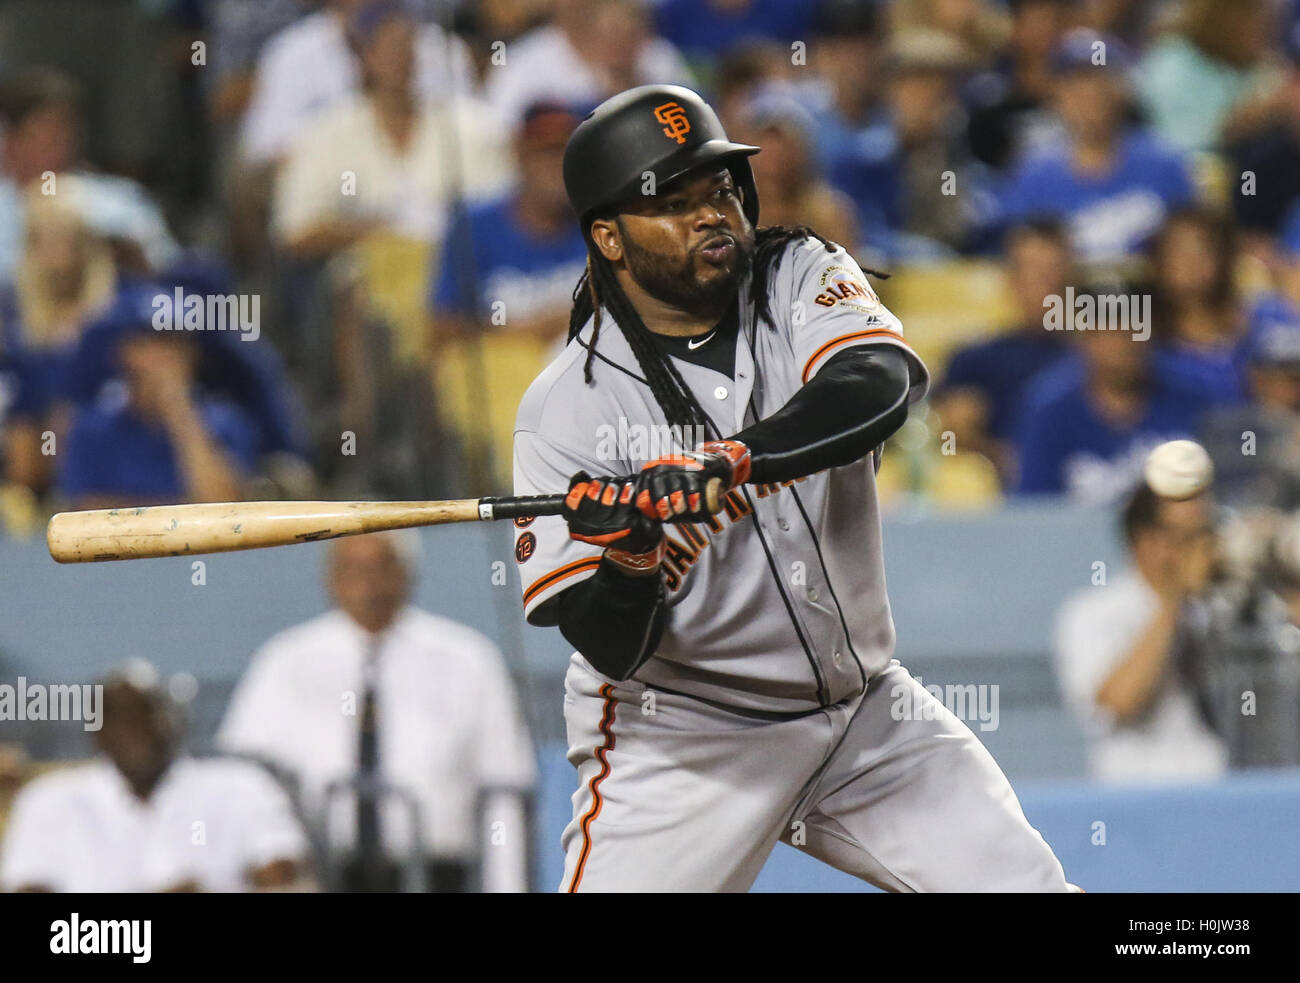 Los Angeles, Californie, USA. 20 Sep, 2016. Giants de San Francisco catcher Johnny Cueto frappe la balle contre Photo Stock